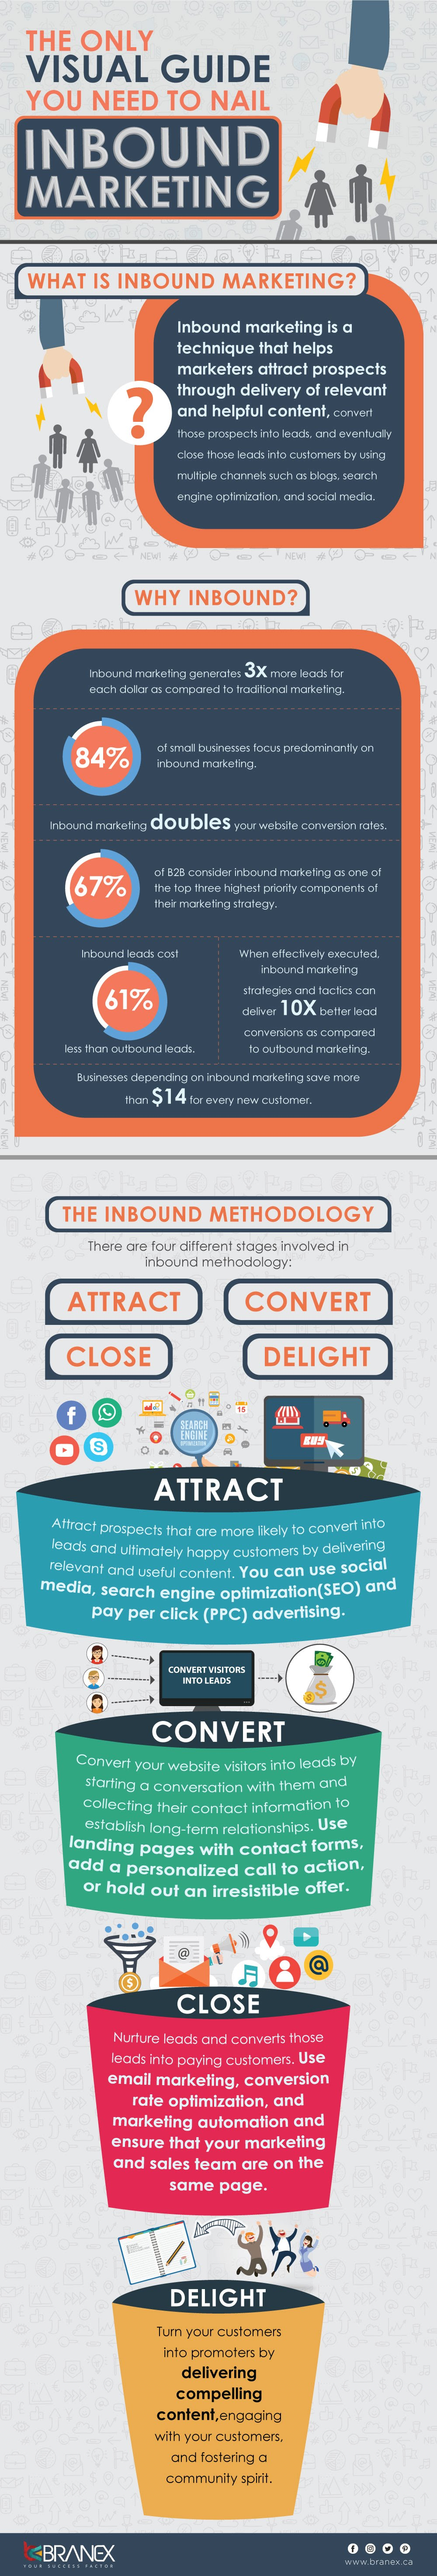 The Only Visual Guide You Need To Nail Inbound Marketing - #infographic